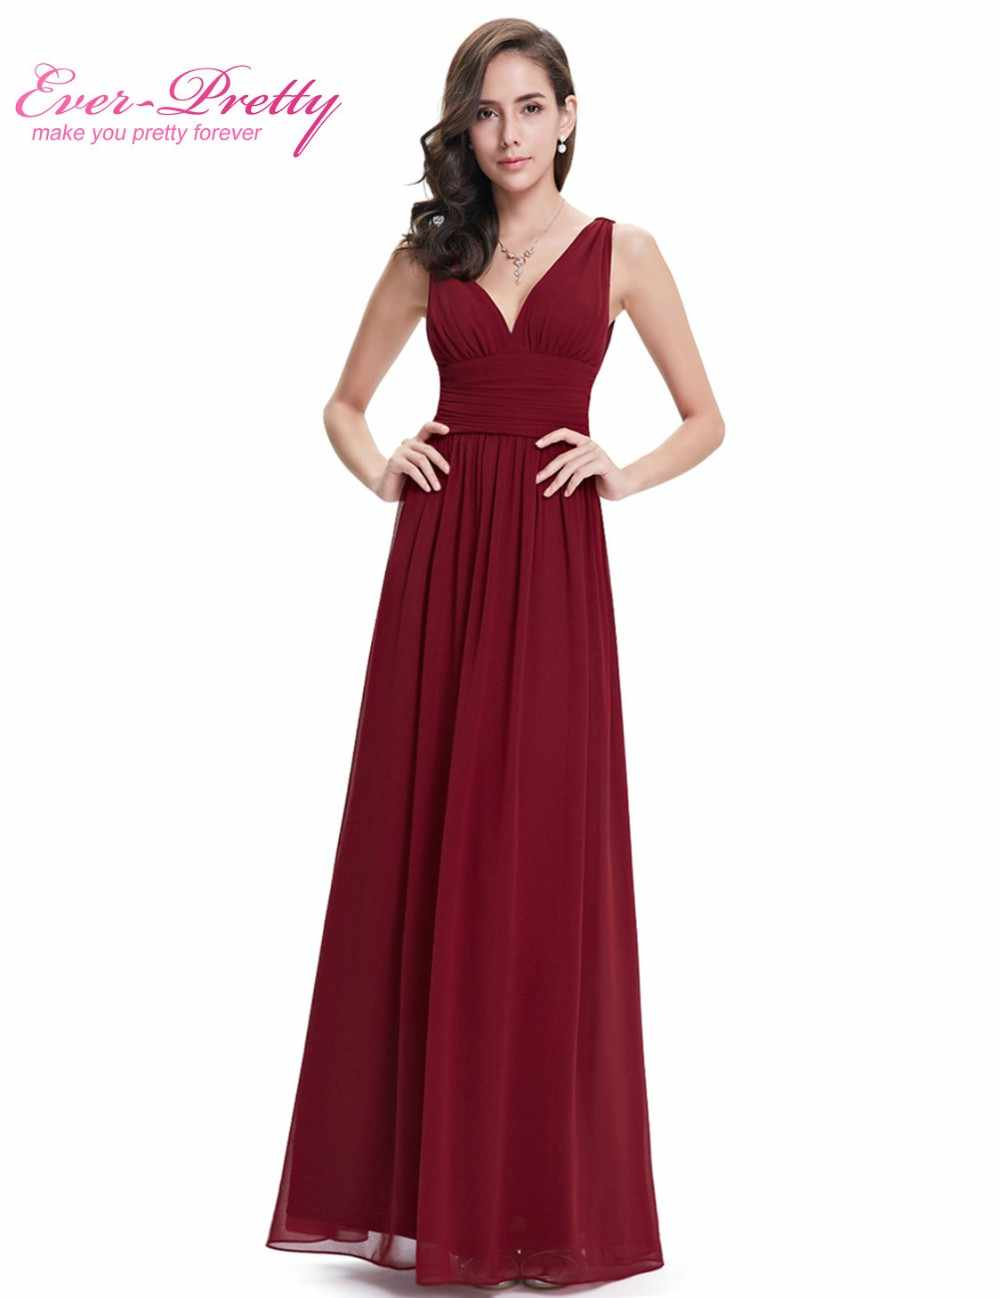 f1a8450457 Burgundy Long Purple Bridesmaid Dresses Vestido Fast Shipping EP09016NB  2018 Women's Sexy Party Dress Chiffon A Line Gowns